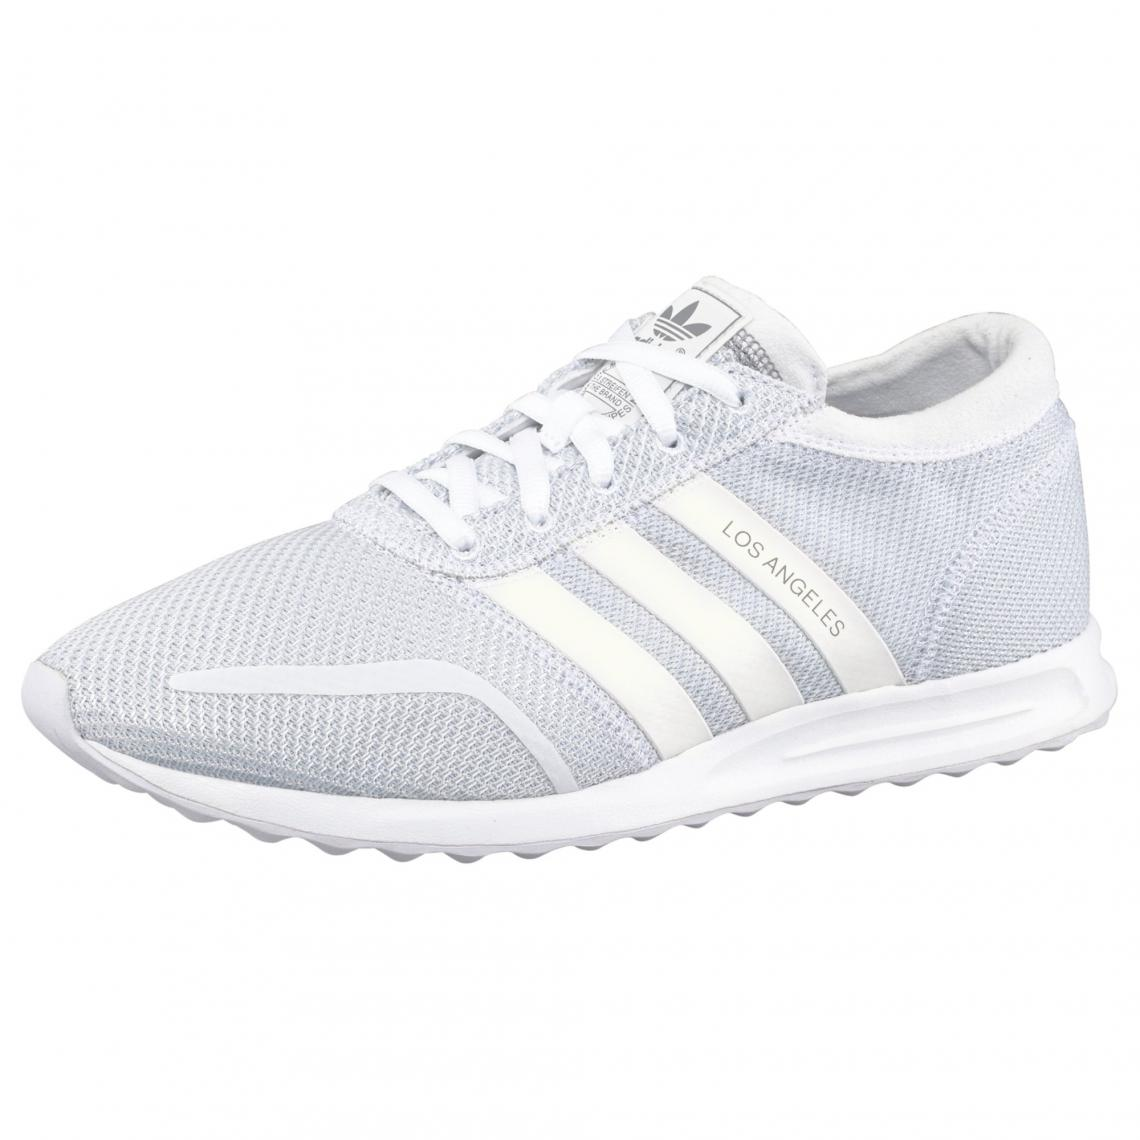 casual shoes utterly stylish buy cheap adidas Originals Los Angeles baskets dessus cuir homme ...